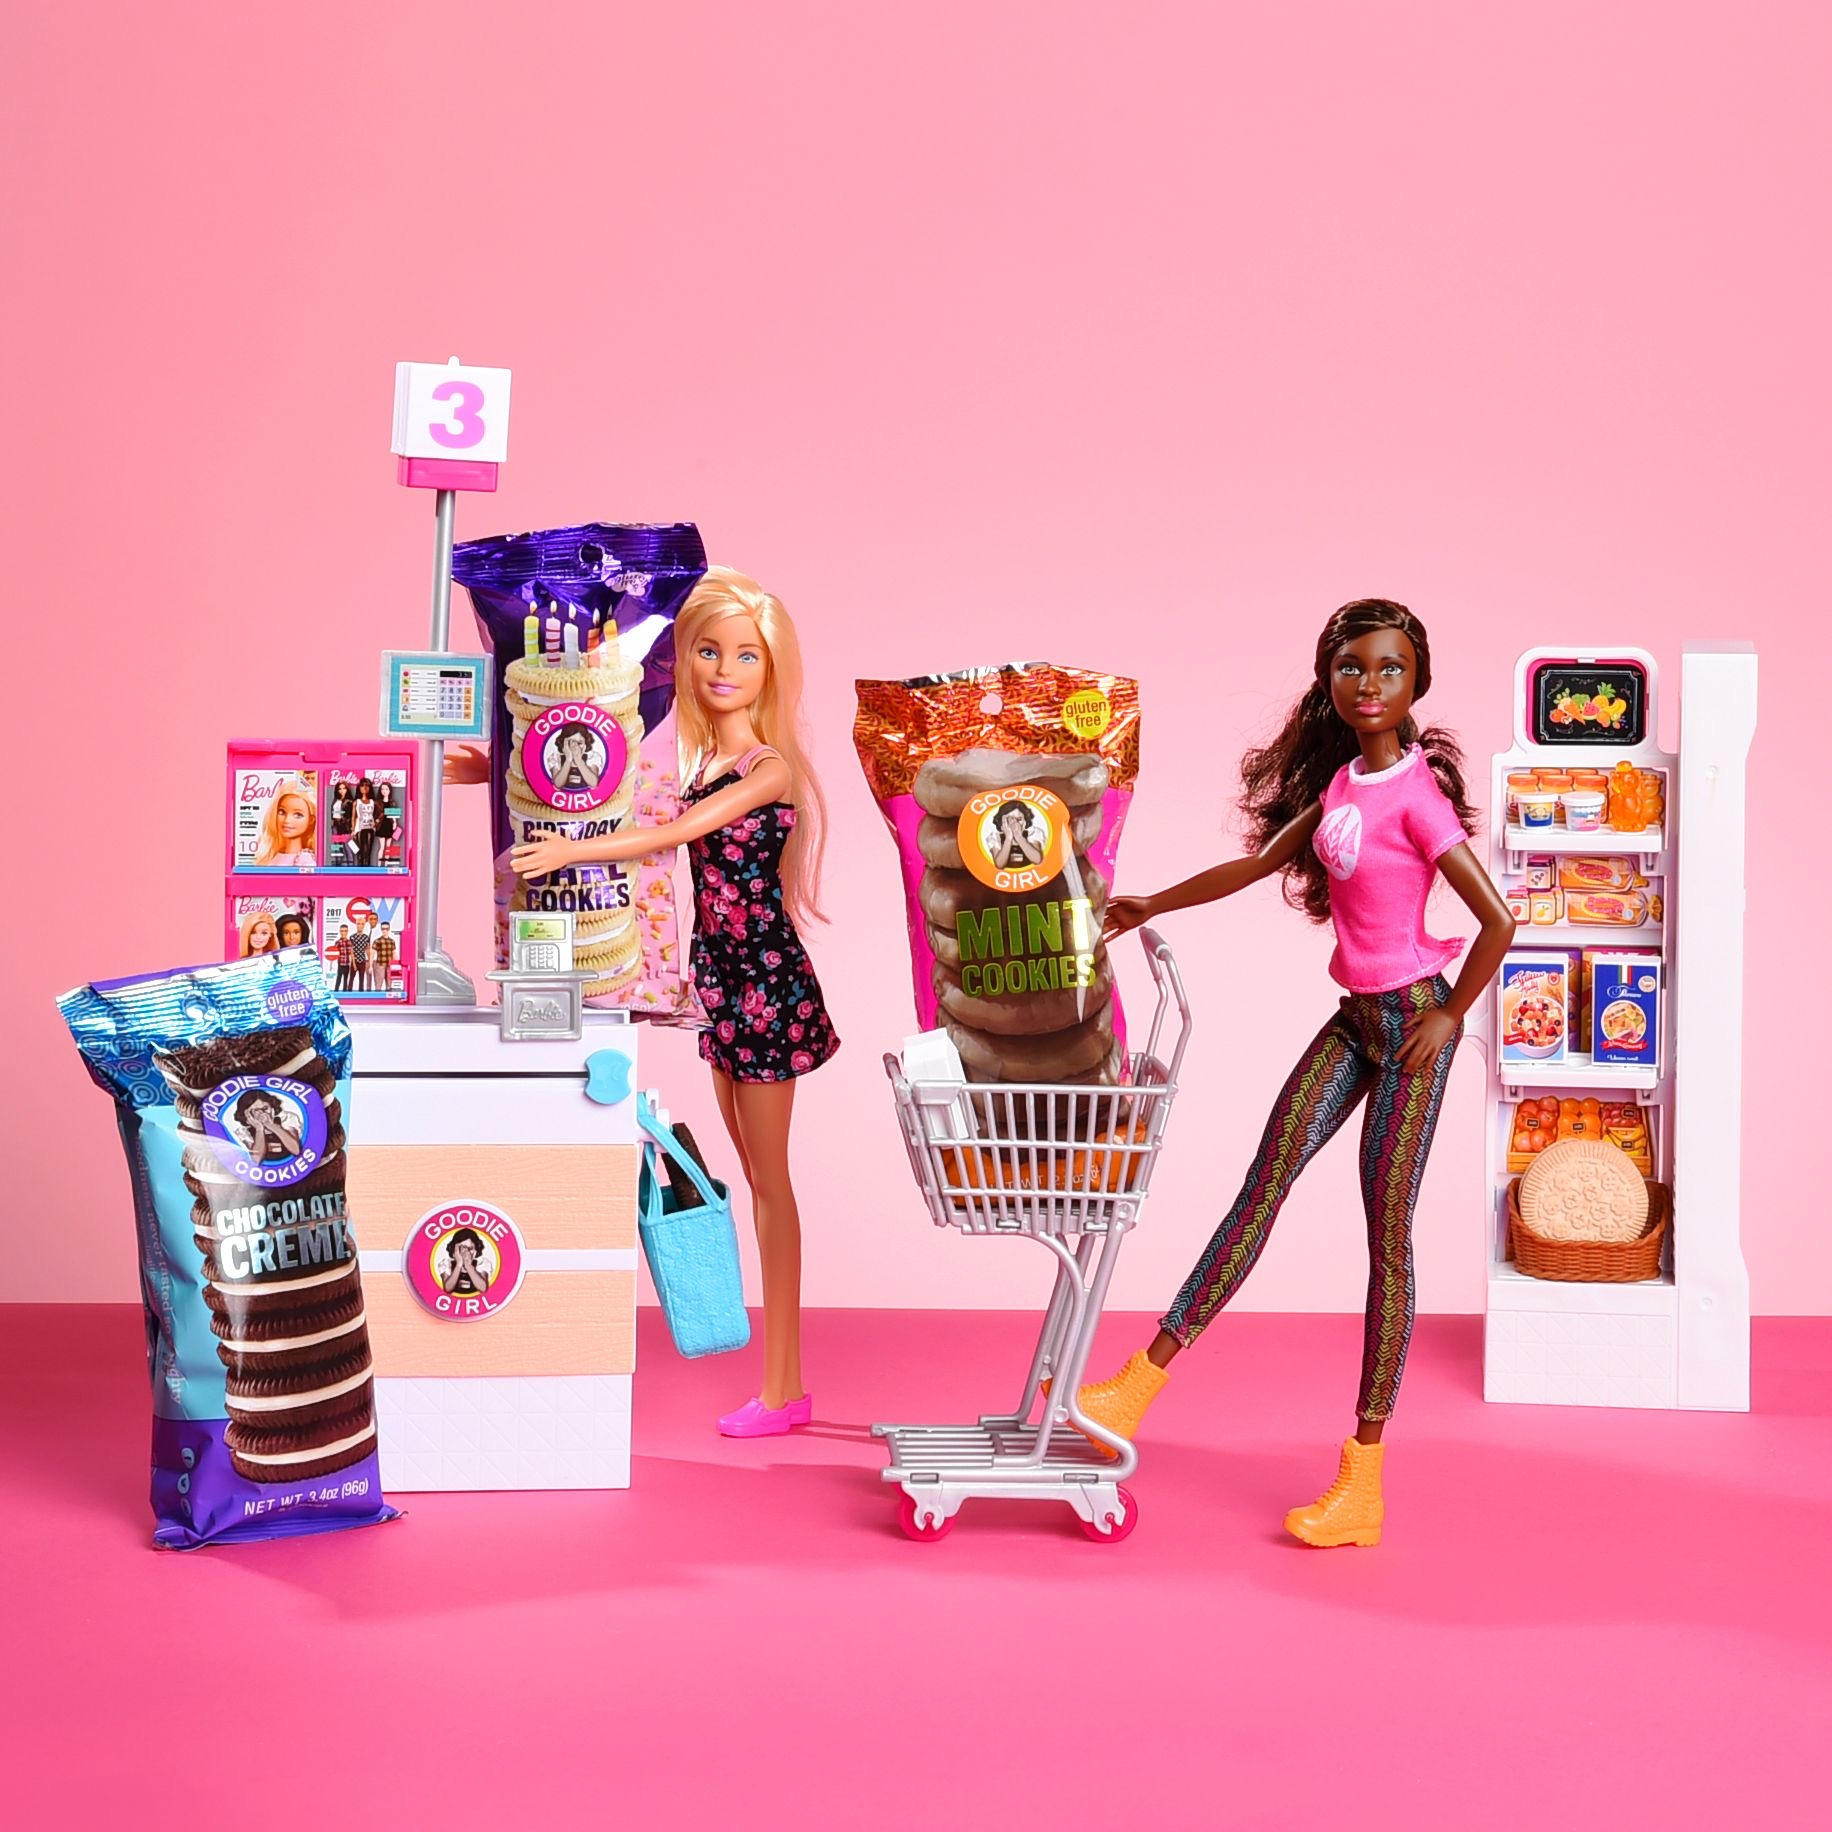 Goodie GIrl Cookies and dolls